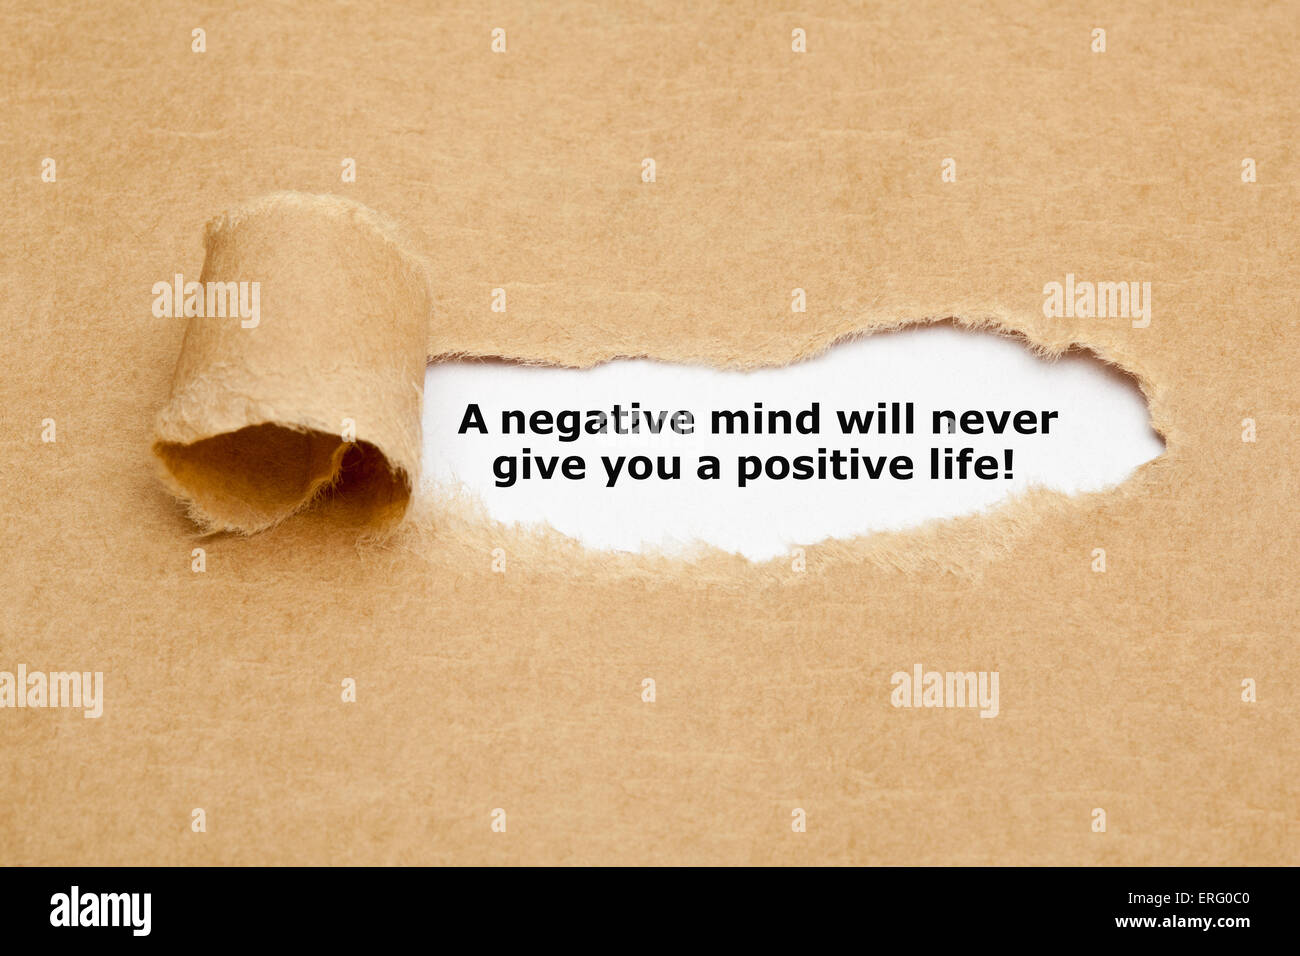 The text A negative mind will never give you a positive life, appearing behind torn brown paper. - Stock Image